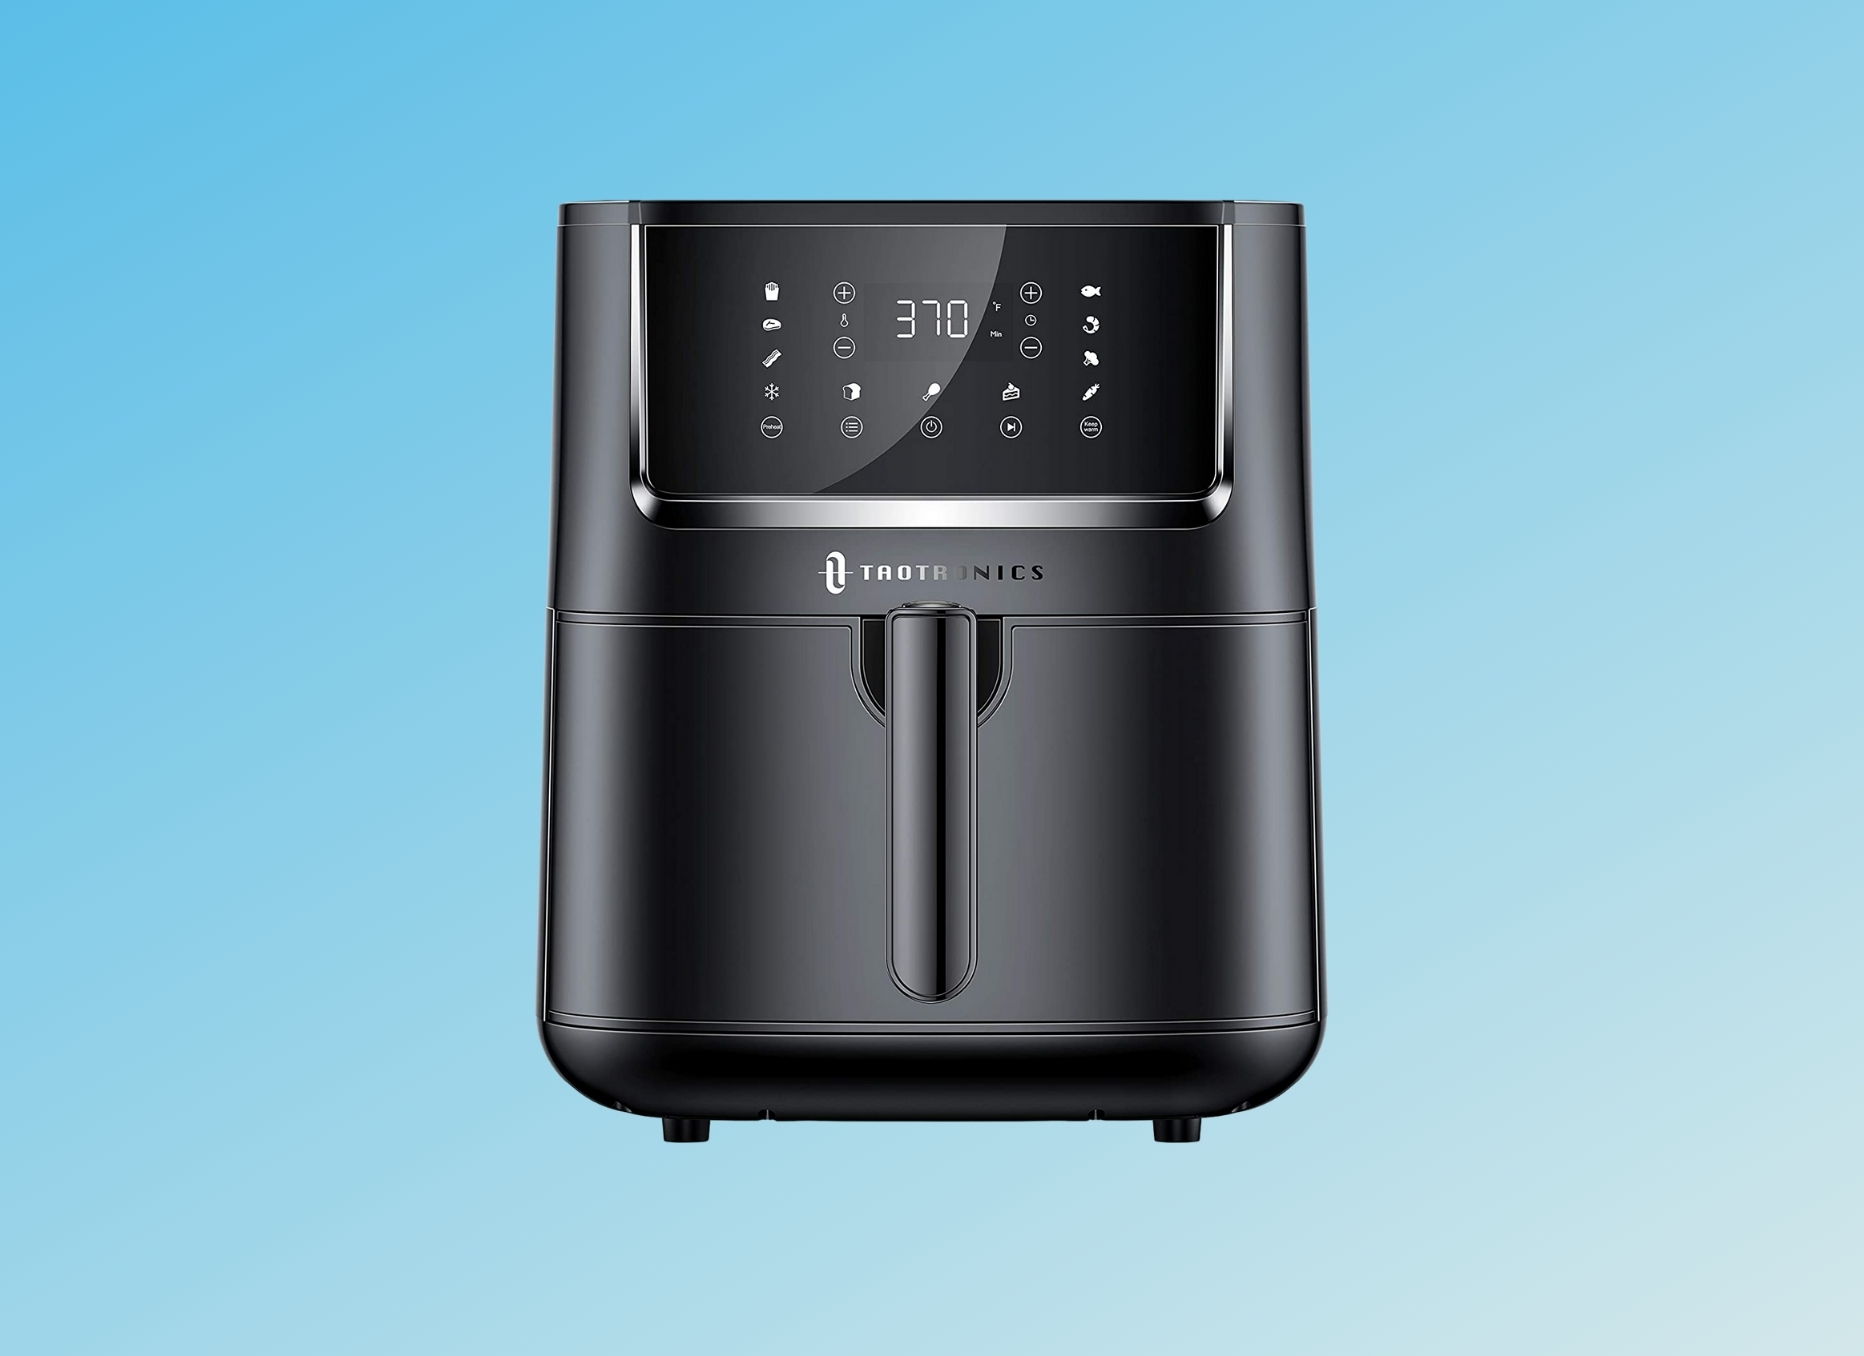 TaoTronics Air Fryer